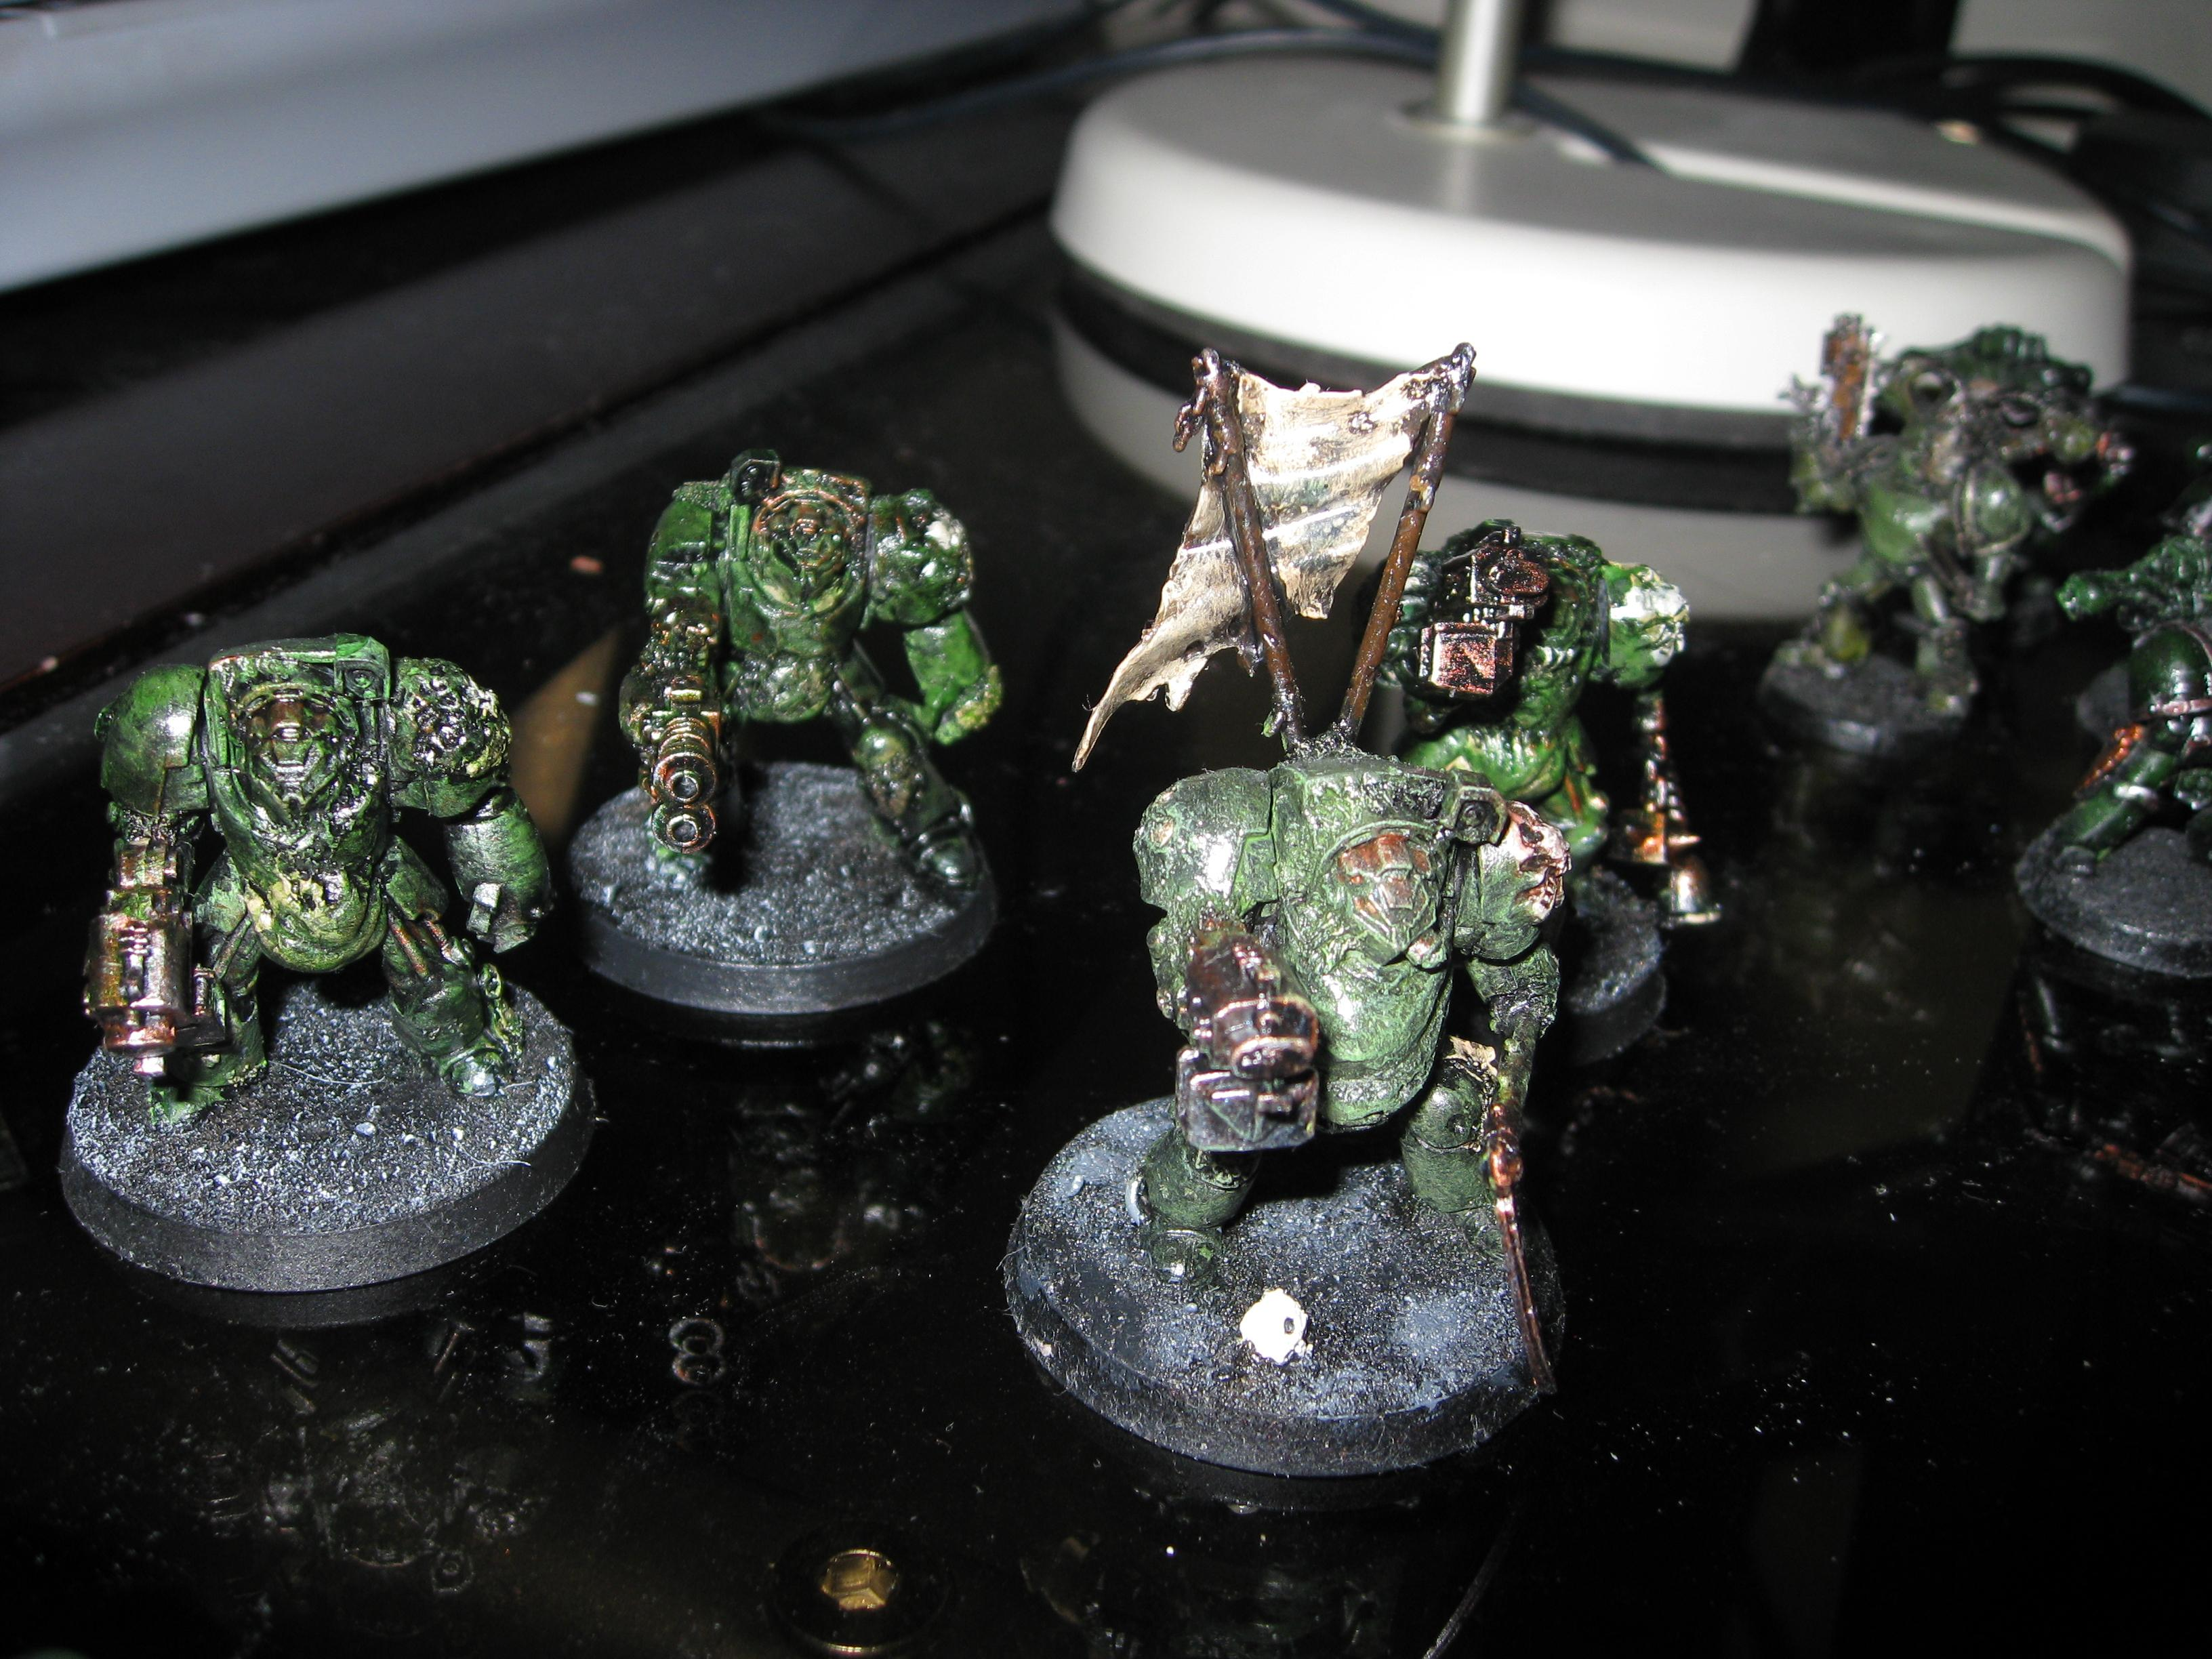 Aobr Terminator, Chaos Space Marines, Conversion, Death Guard, Nurgle, Plague Marines, Terminator Armor, Terminator Lord